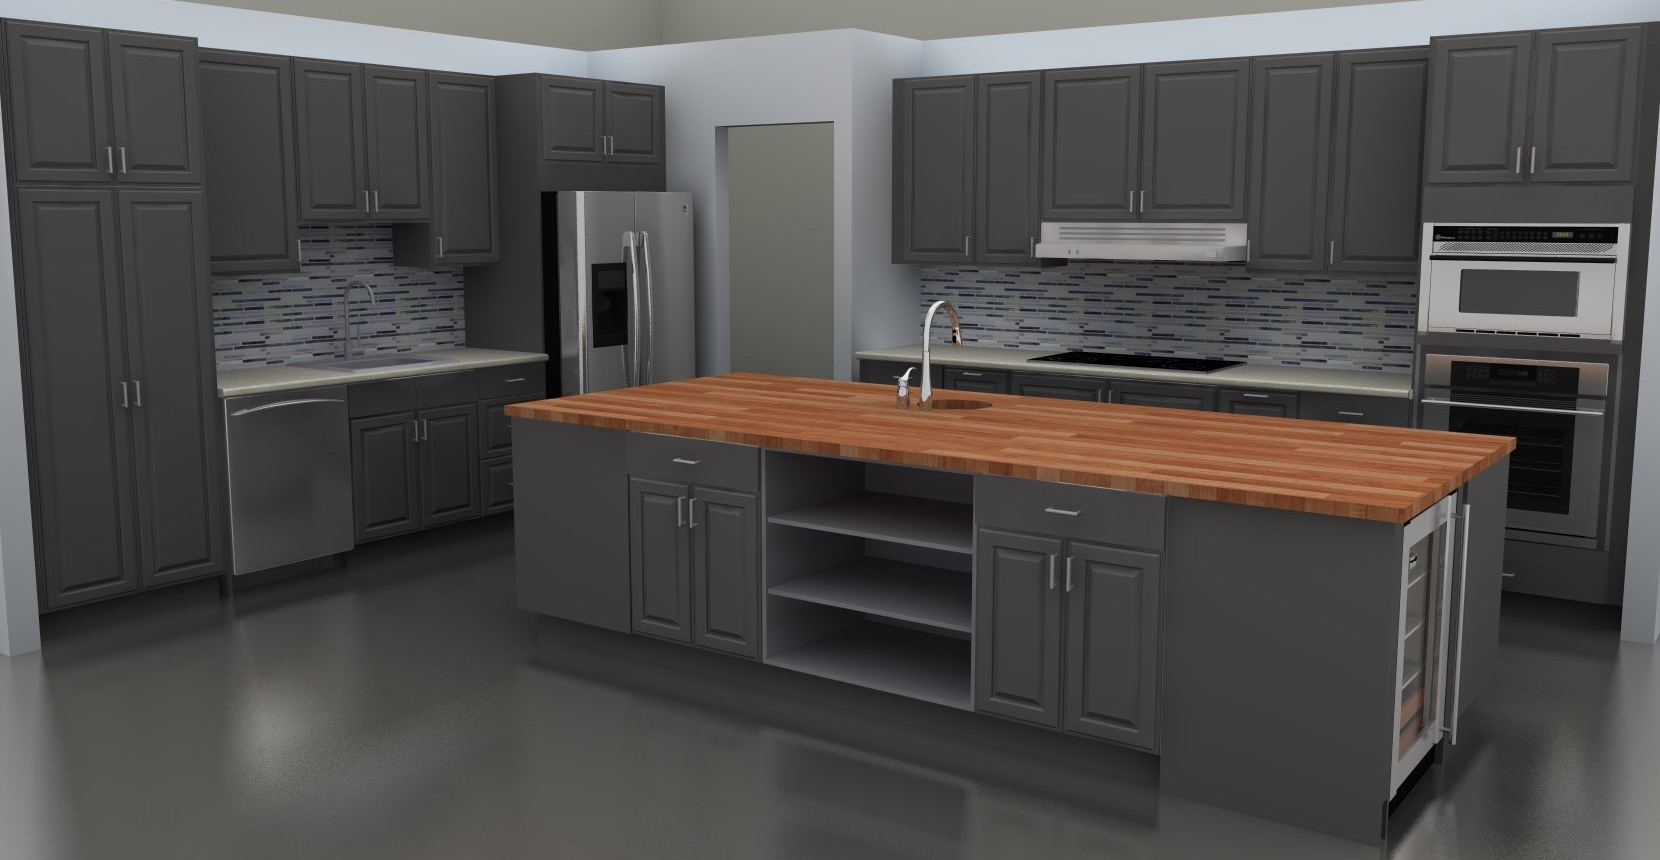 Stylish lidingo gray doors for a new ikea kitchen for Cabinet and countertop design